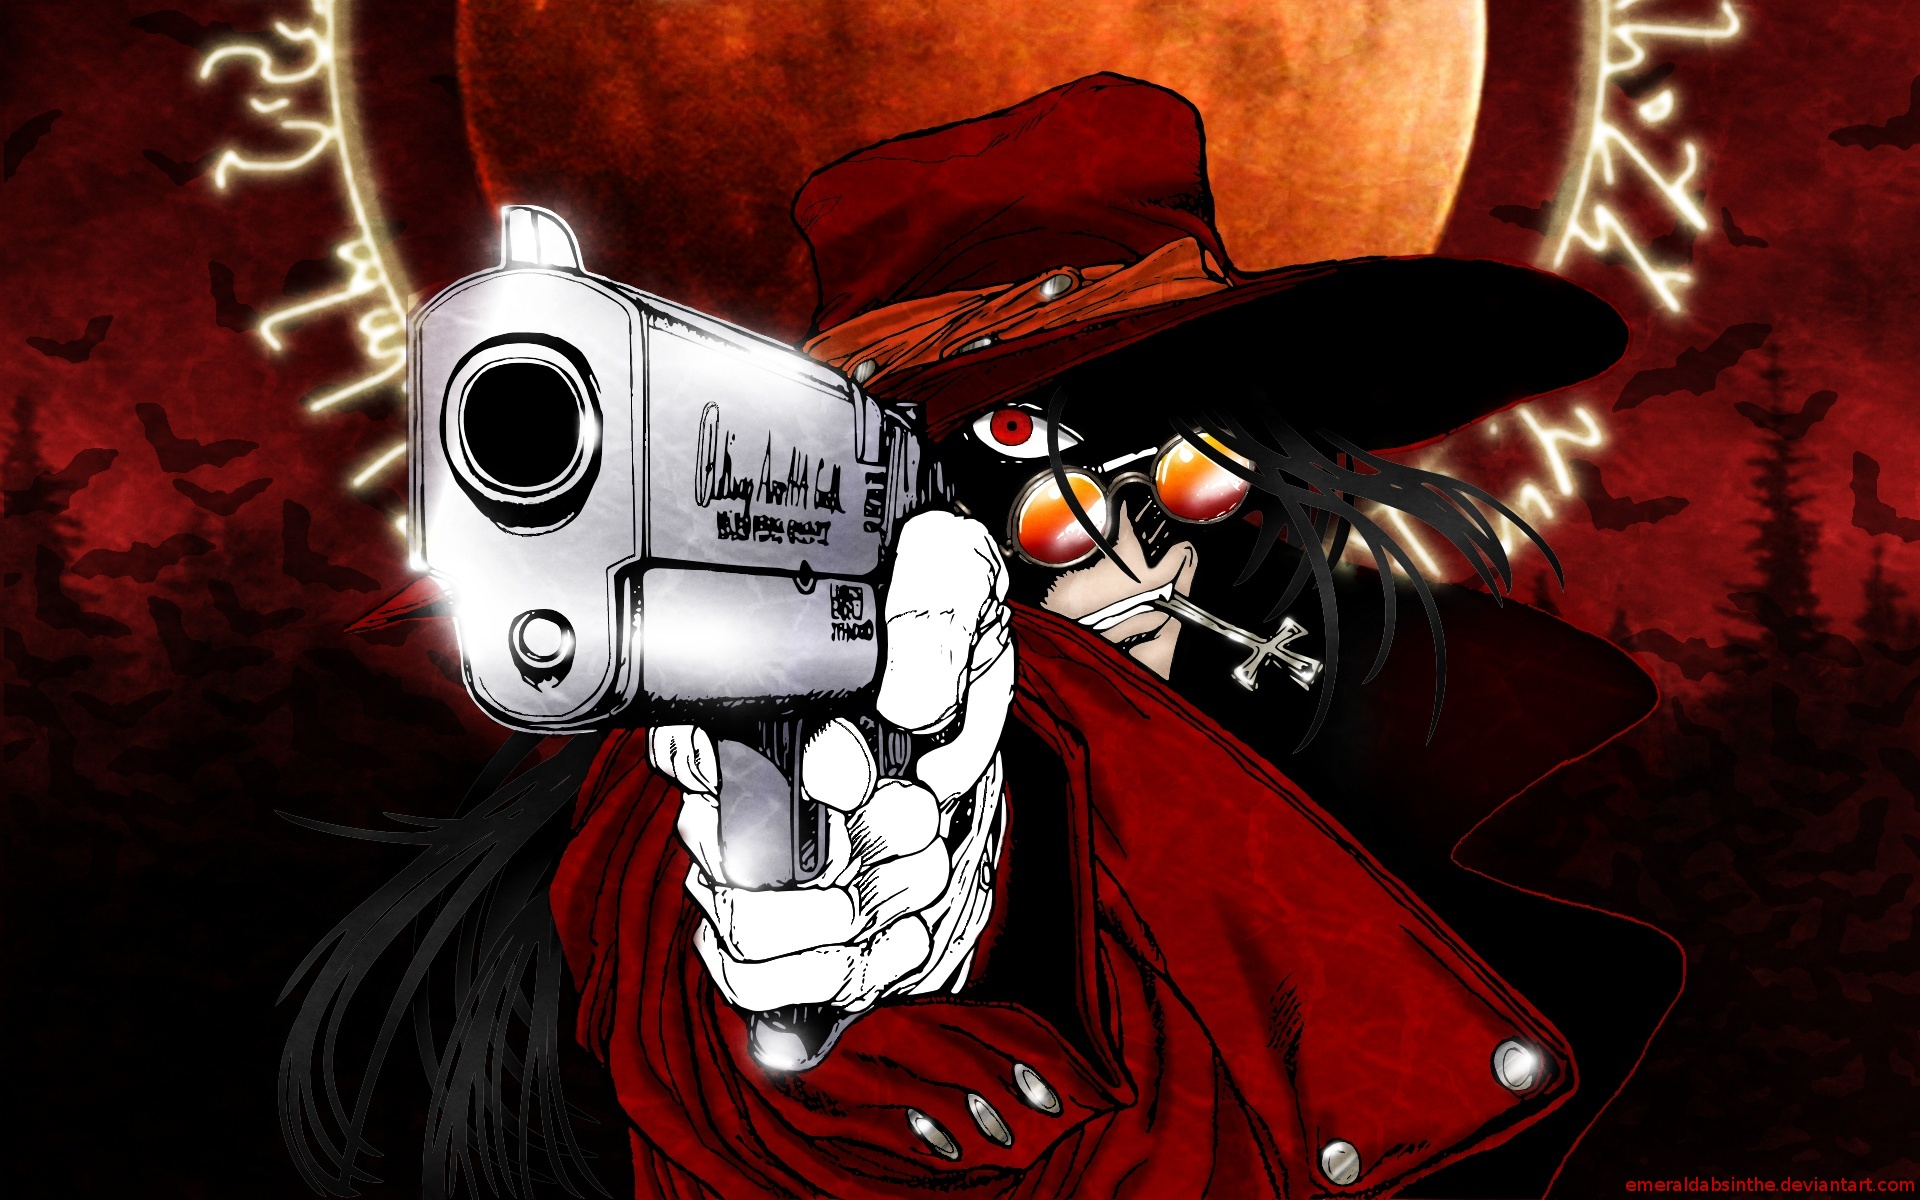 Hellsing gothic anime wallpaper 1920x1200 48117 - Anime hellsing wallpaper ...